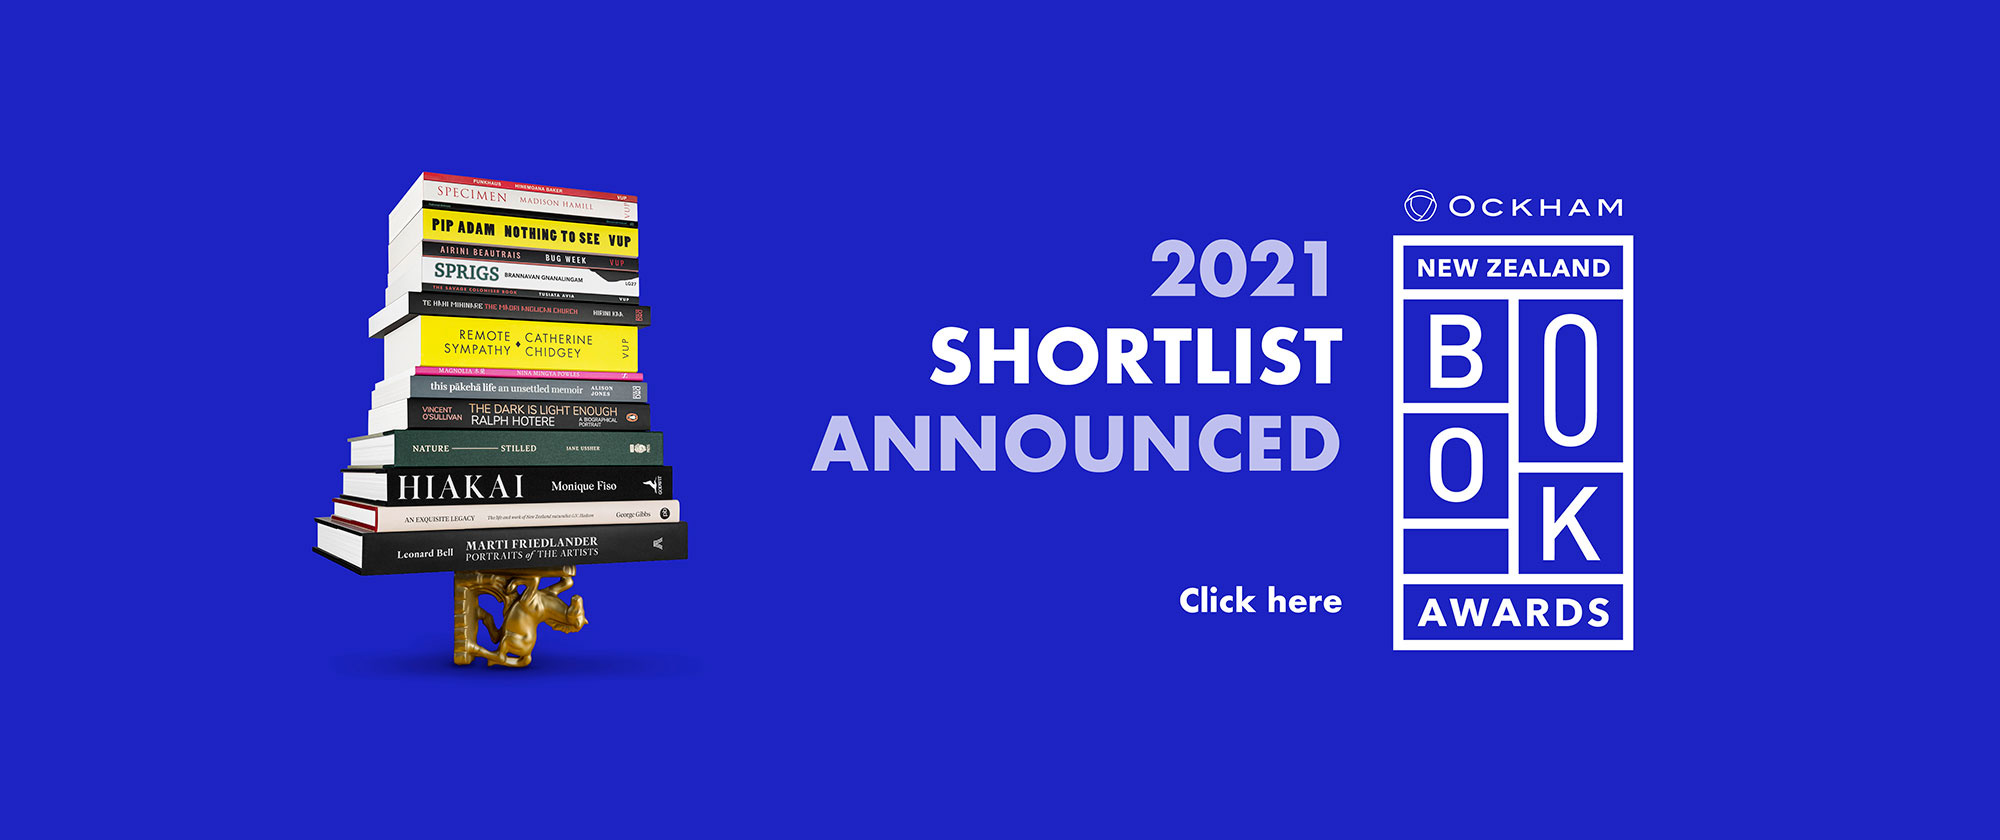 Shortlist - Click here